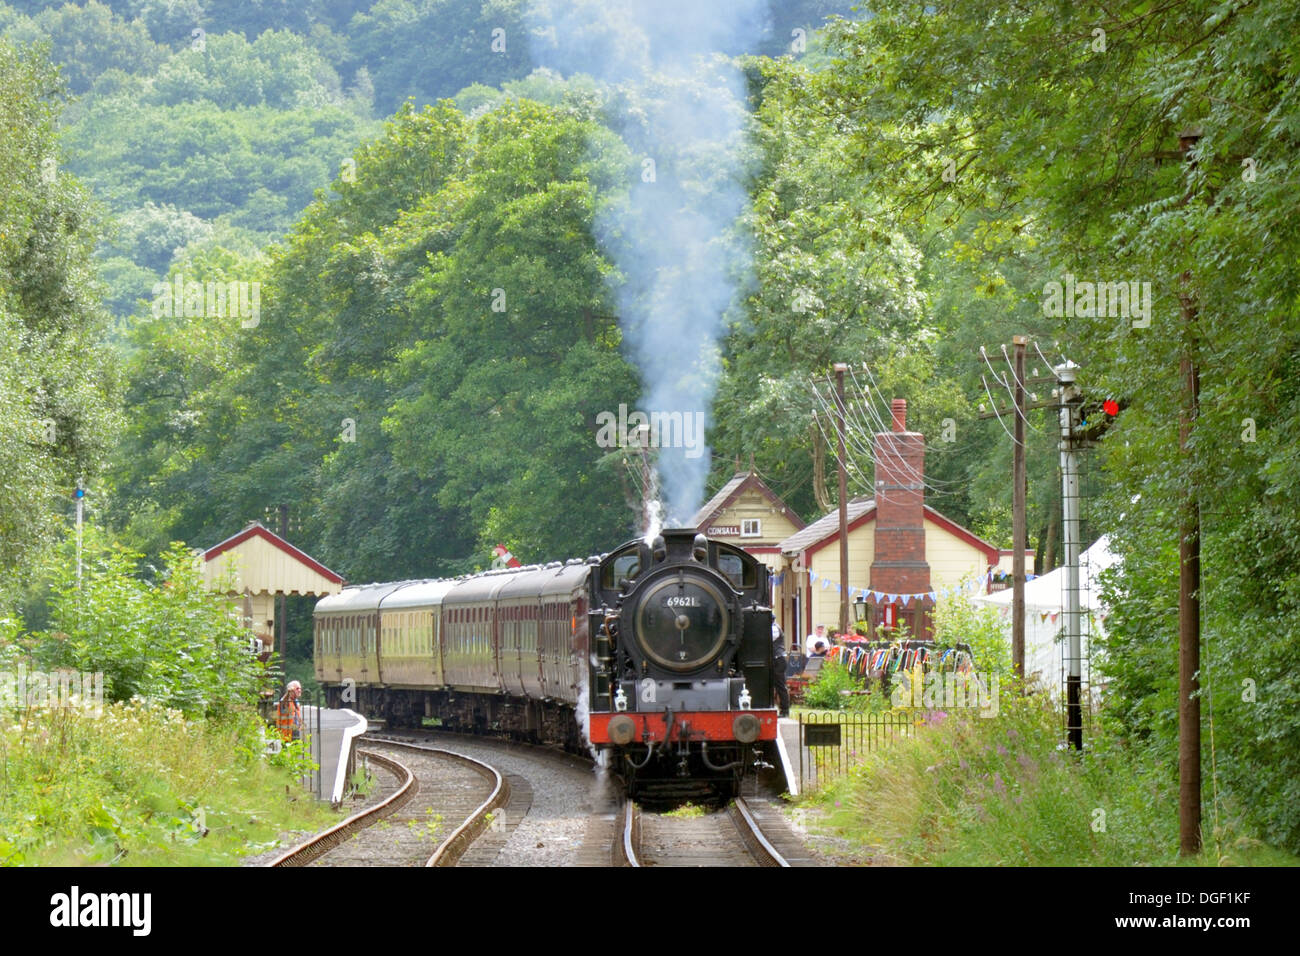 Steam Train at Consall Station - Churnet Valley Railway - Stock Image